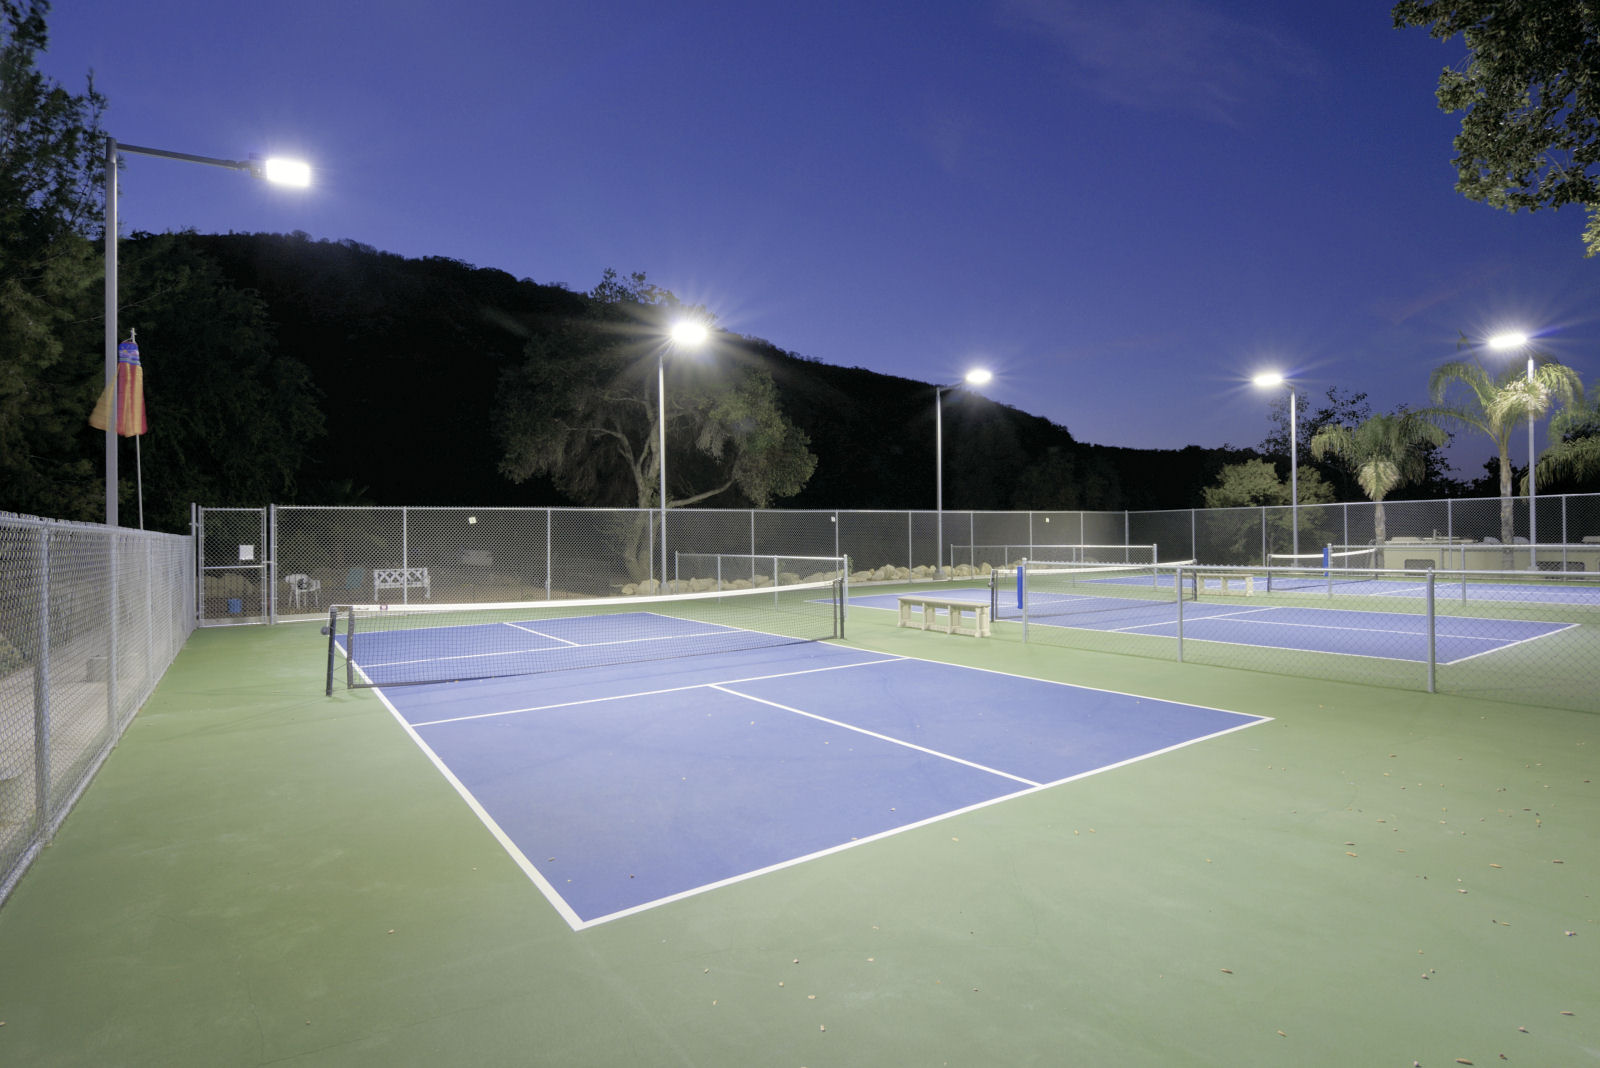 Brite court tennis lighting led tennis lighting for indoor outdoor led pickle ball lighting at ge club workwithnaturefo